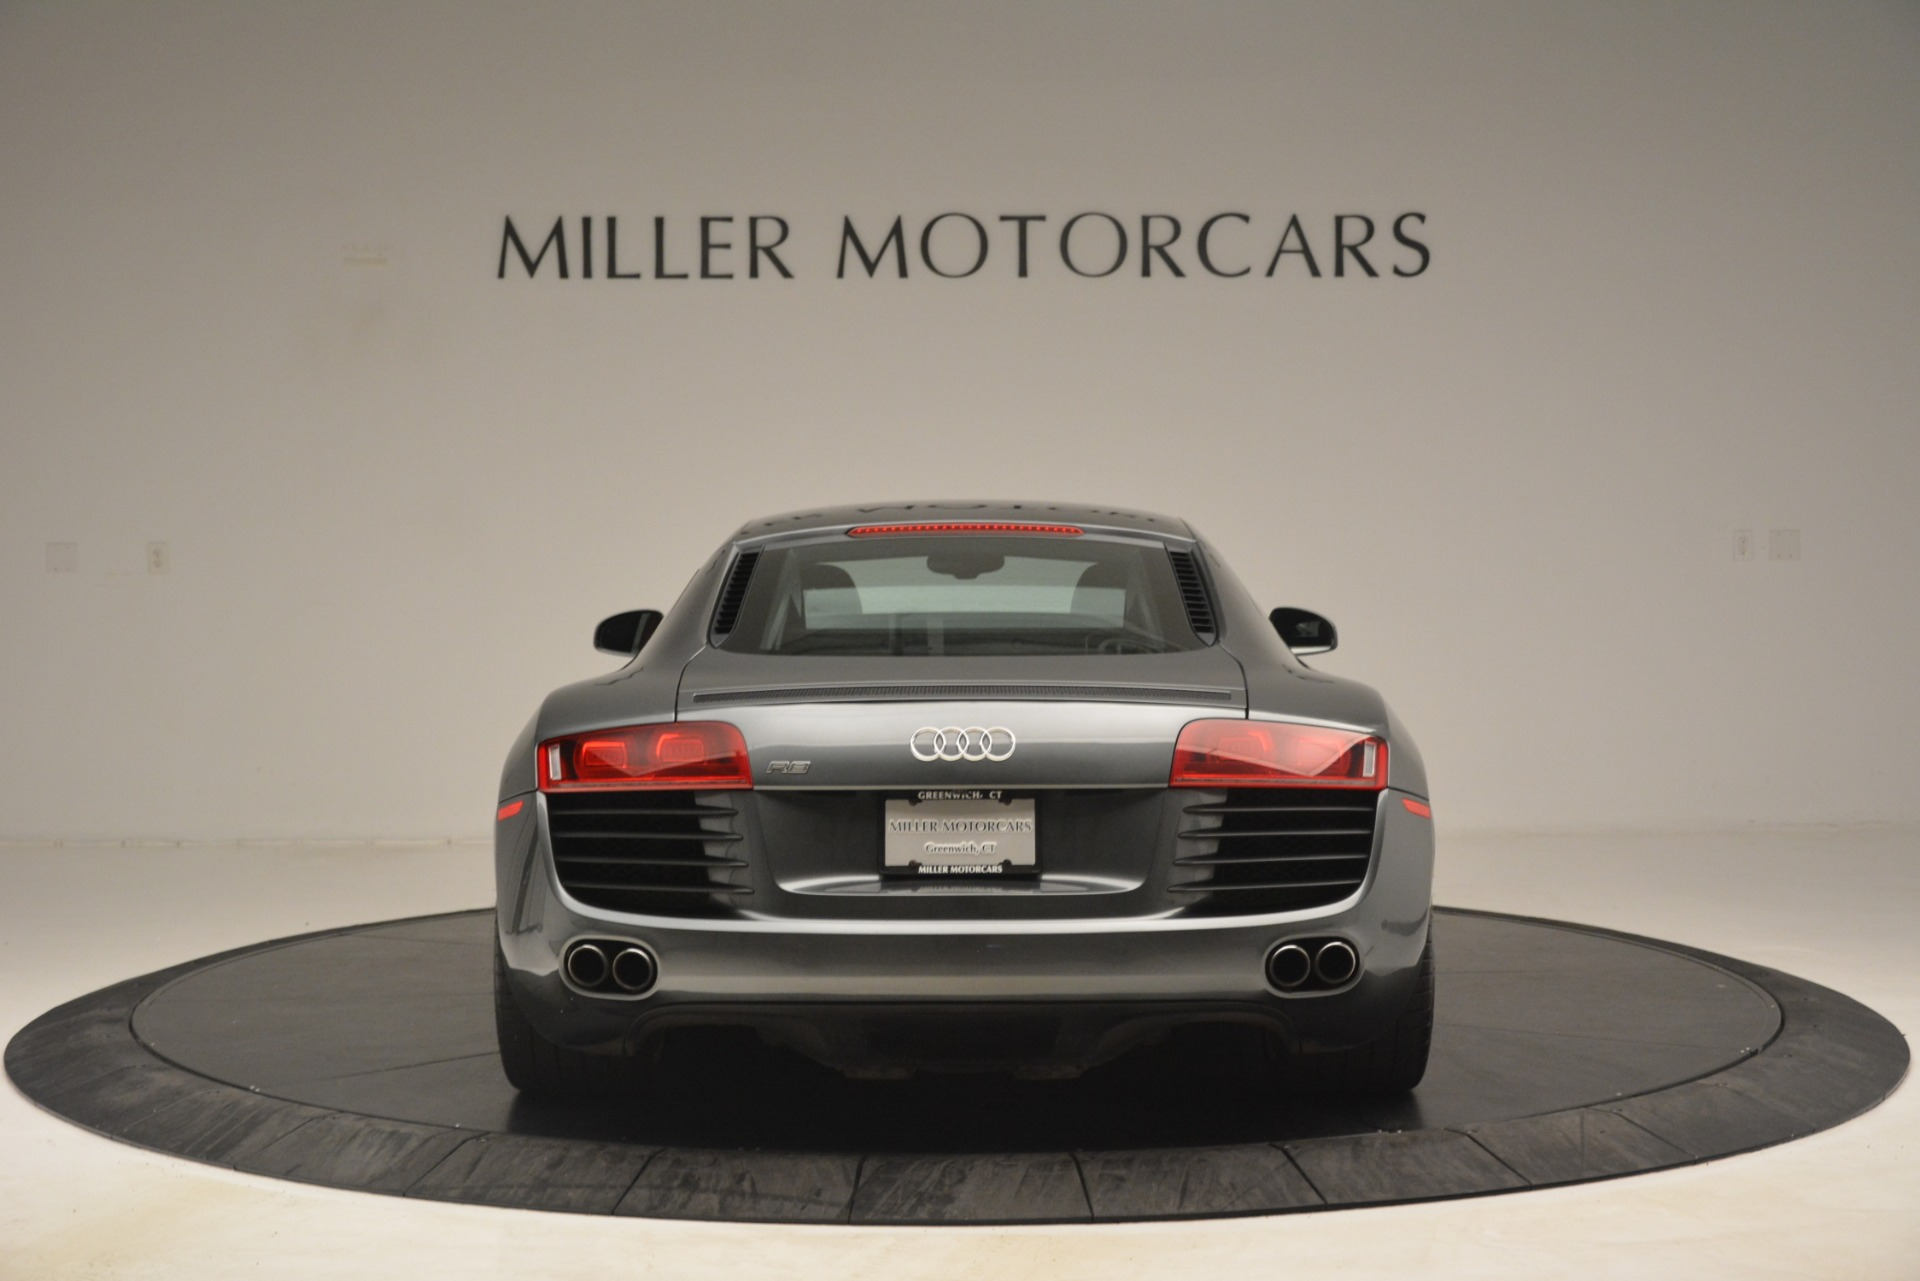 Used 2009 Audi R8 quattro For Sale In Greenwich, CT 3228_p8